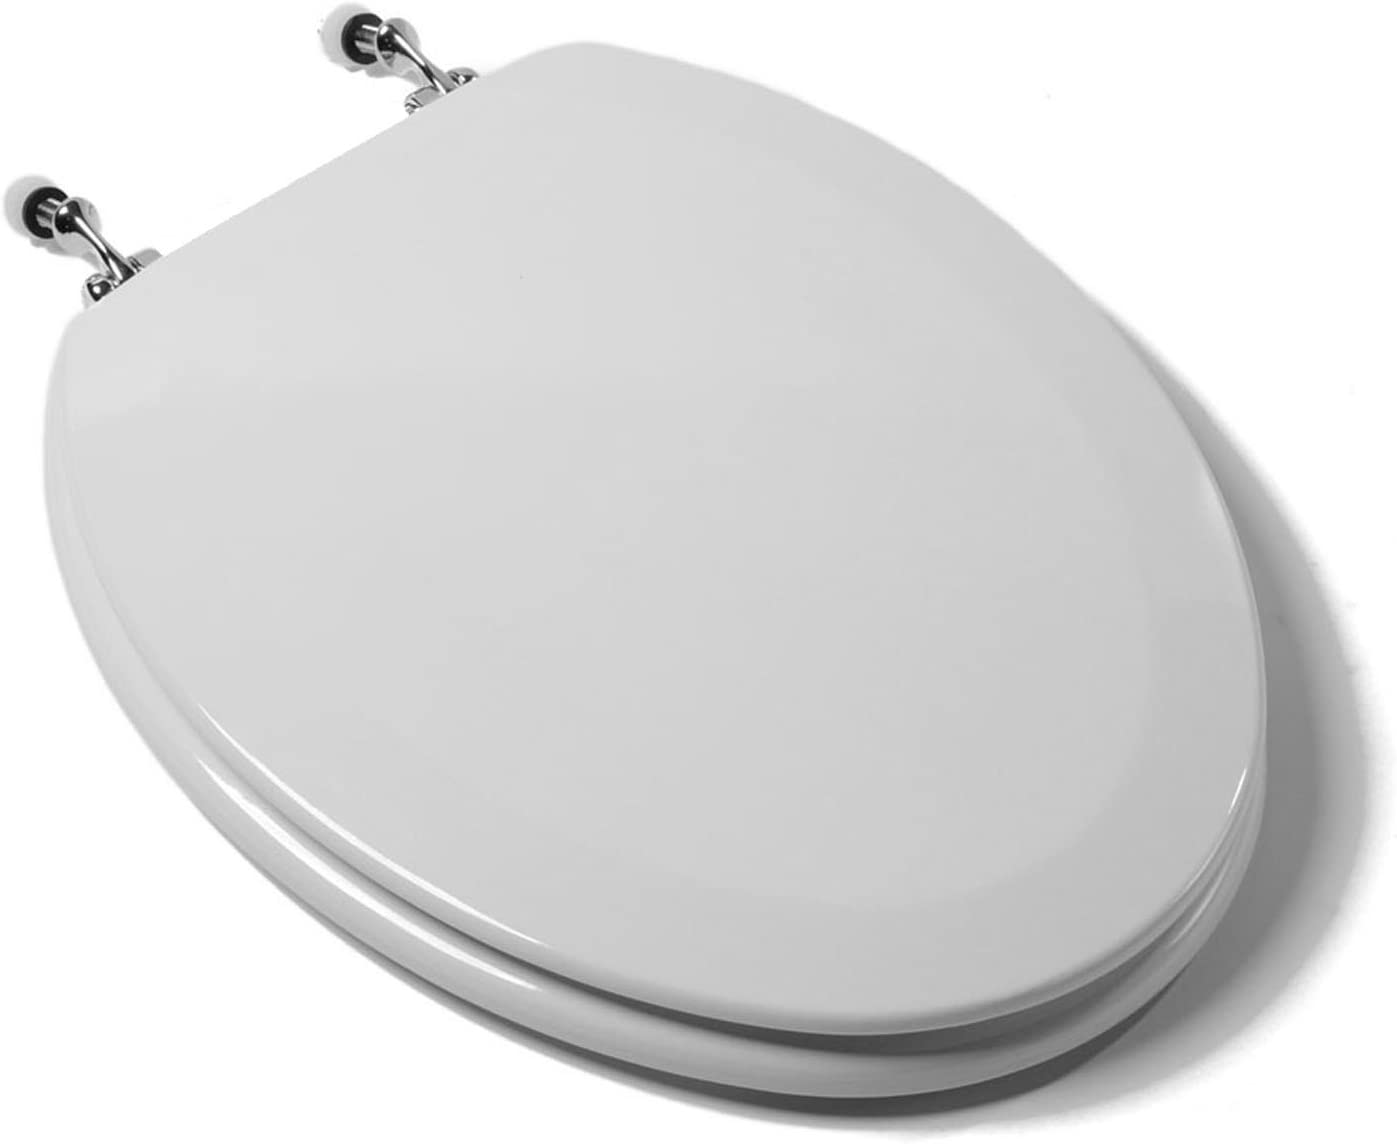 Bath Décor 1F1E6-00CH Premium Molded Wood Elongated Toilet Seat with Adjustable Metal Chrome Finish Hinge & OSG, White